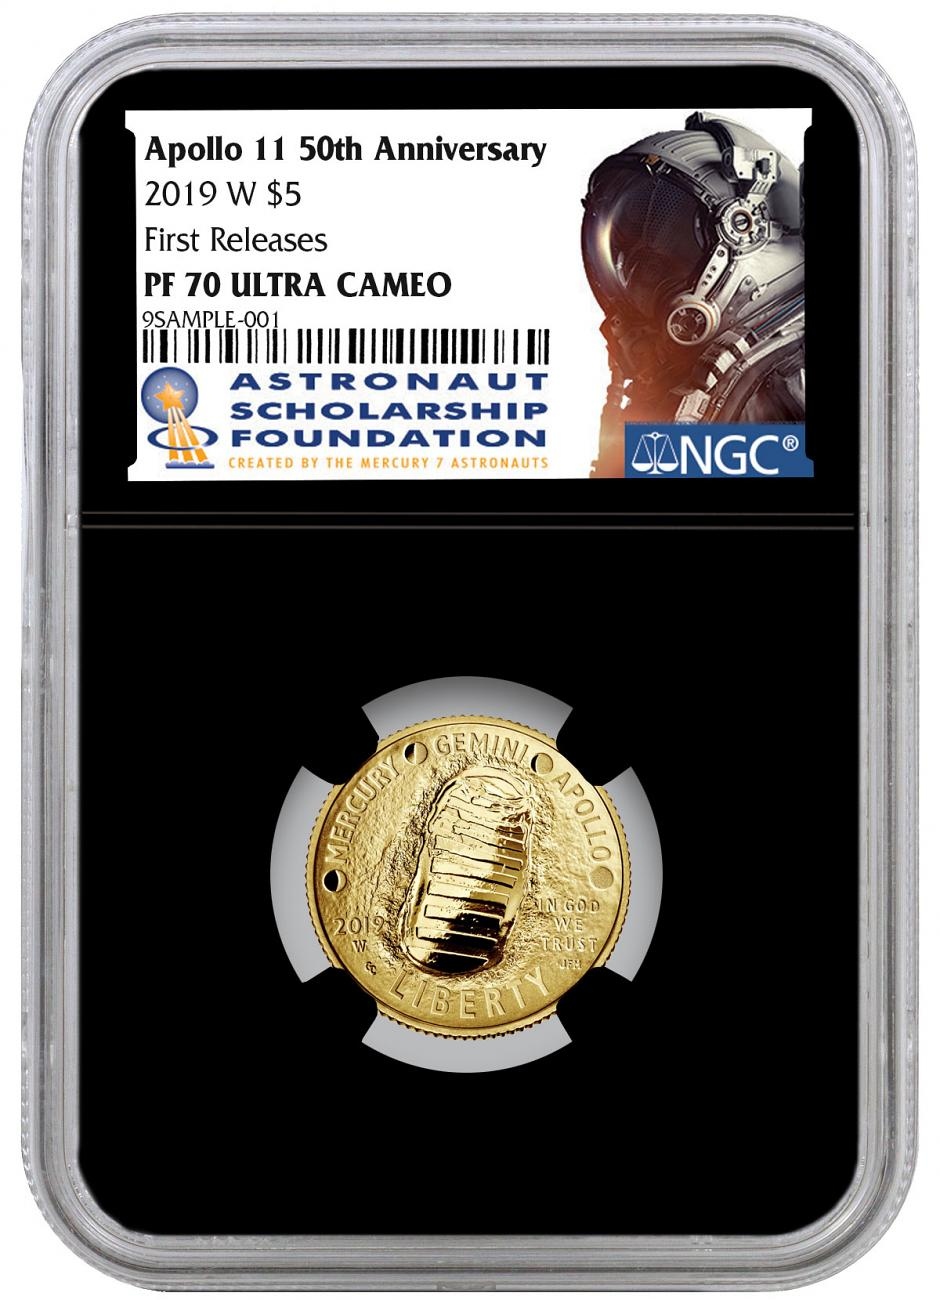 2019-W US Apollo 11 50th Anniversary $5 Gold Commemorative Proof Coin NGC PF70 FR Black Core Holder Astronaut Scholarship Foundation Label